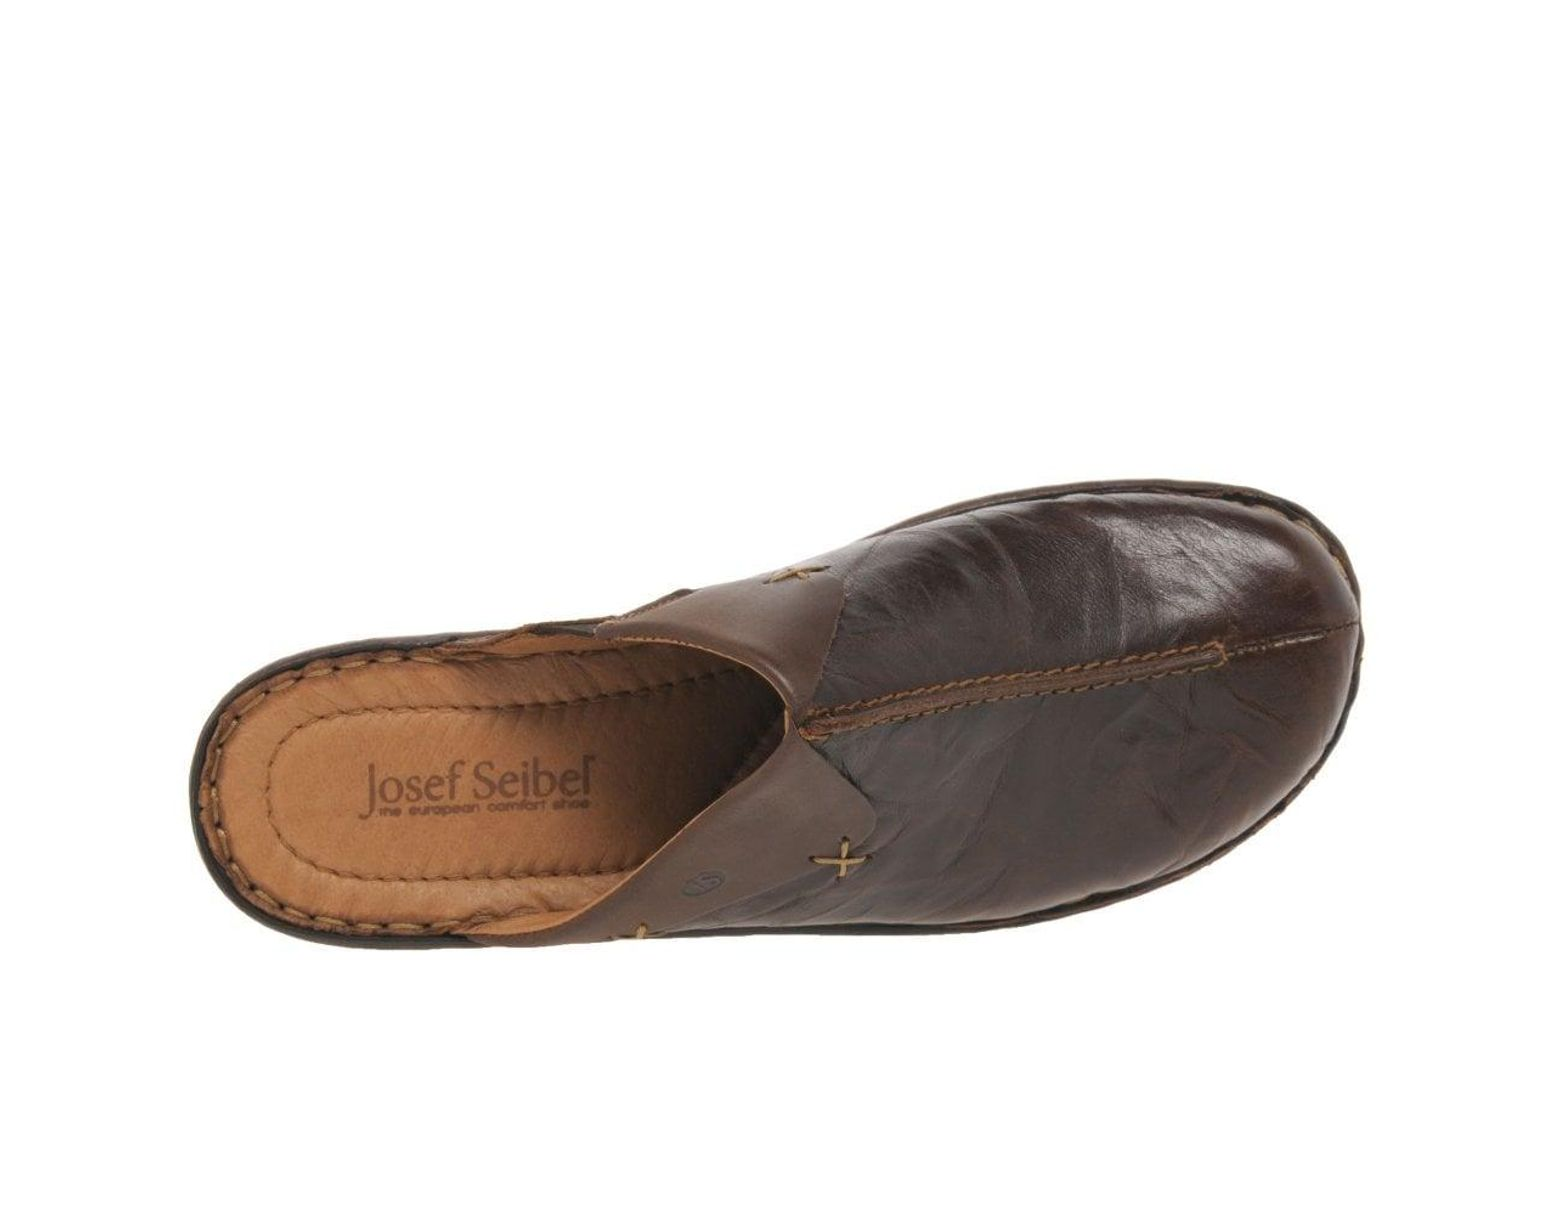 6cabb8af Josef Seibel Catalonia Cerys Womens Leather Clogs in Brown - Lyst